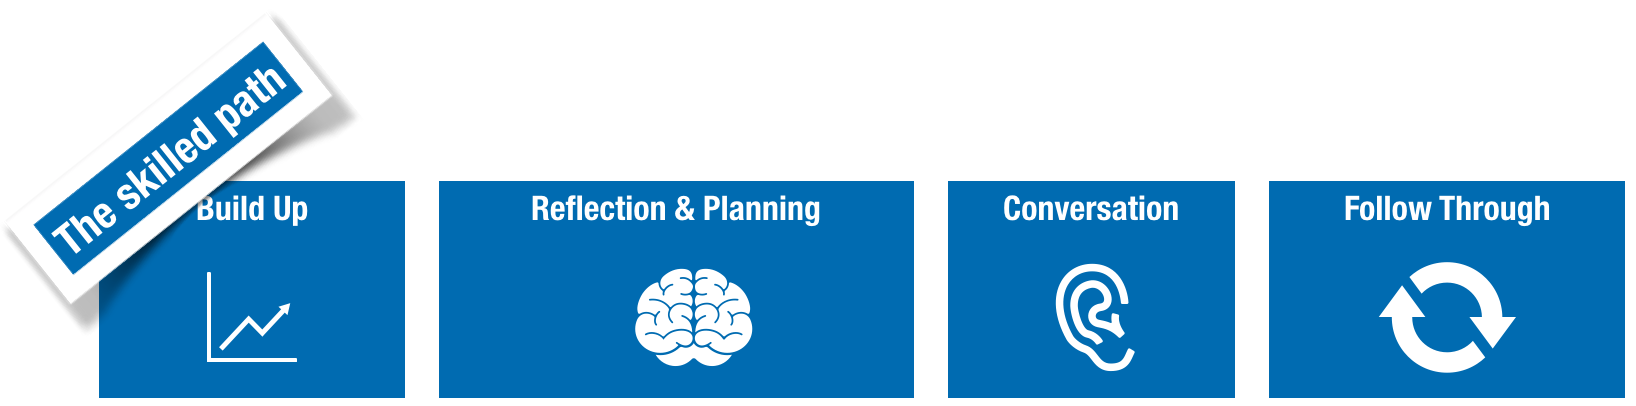 Better outcomes, full of learning, emerge from reducing the time between build-up and taking action, reflecting and planning (and practicing), listening as much as speaking and following up with learning-informed action...